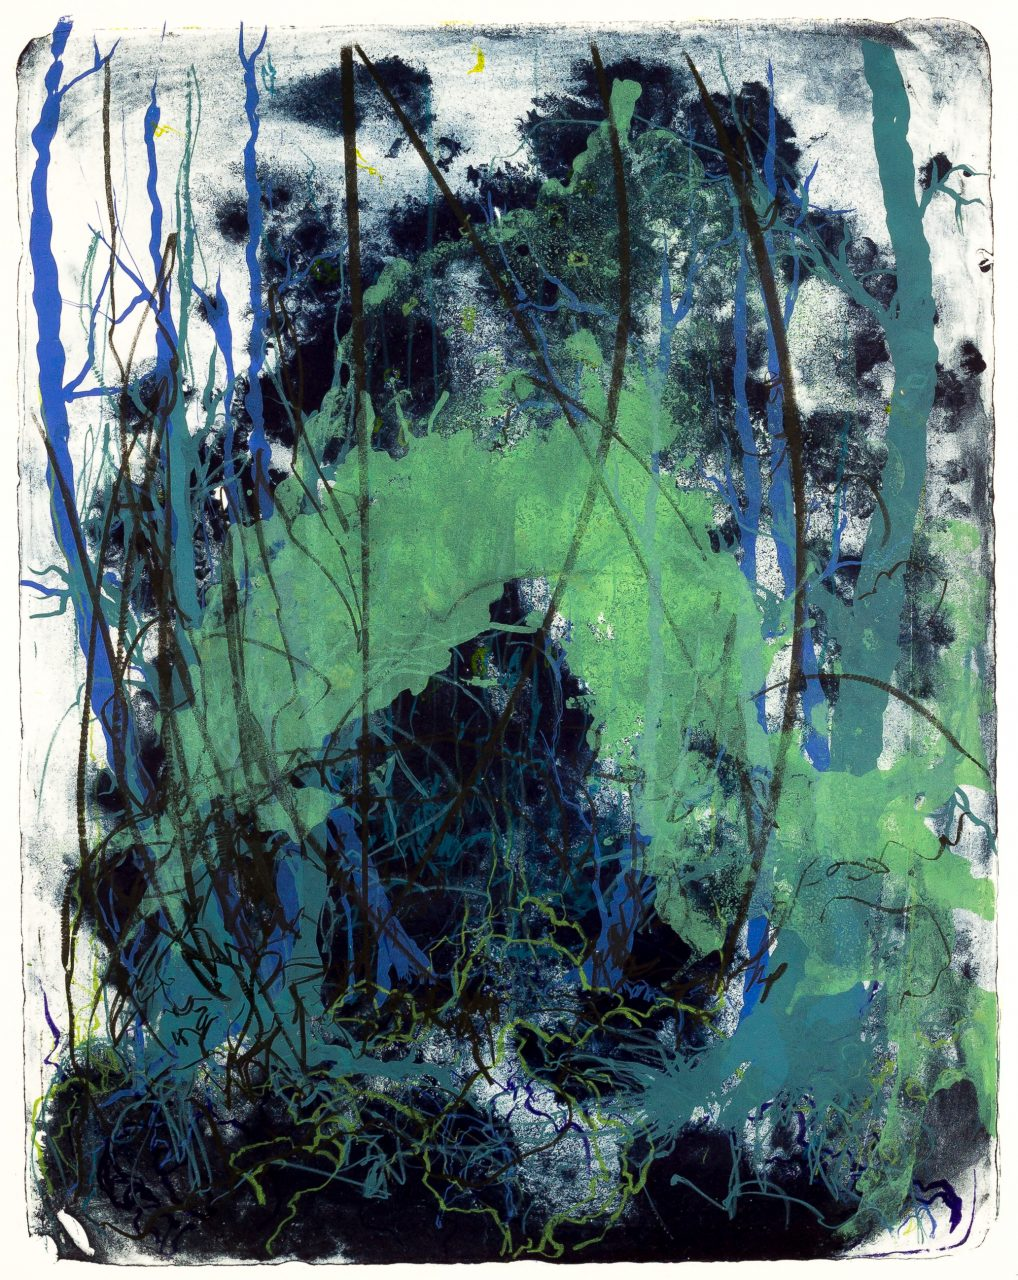 Wald X(N)-XXIV, 2016, color lithograph, unique, 50x40 cm